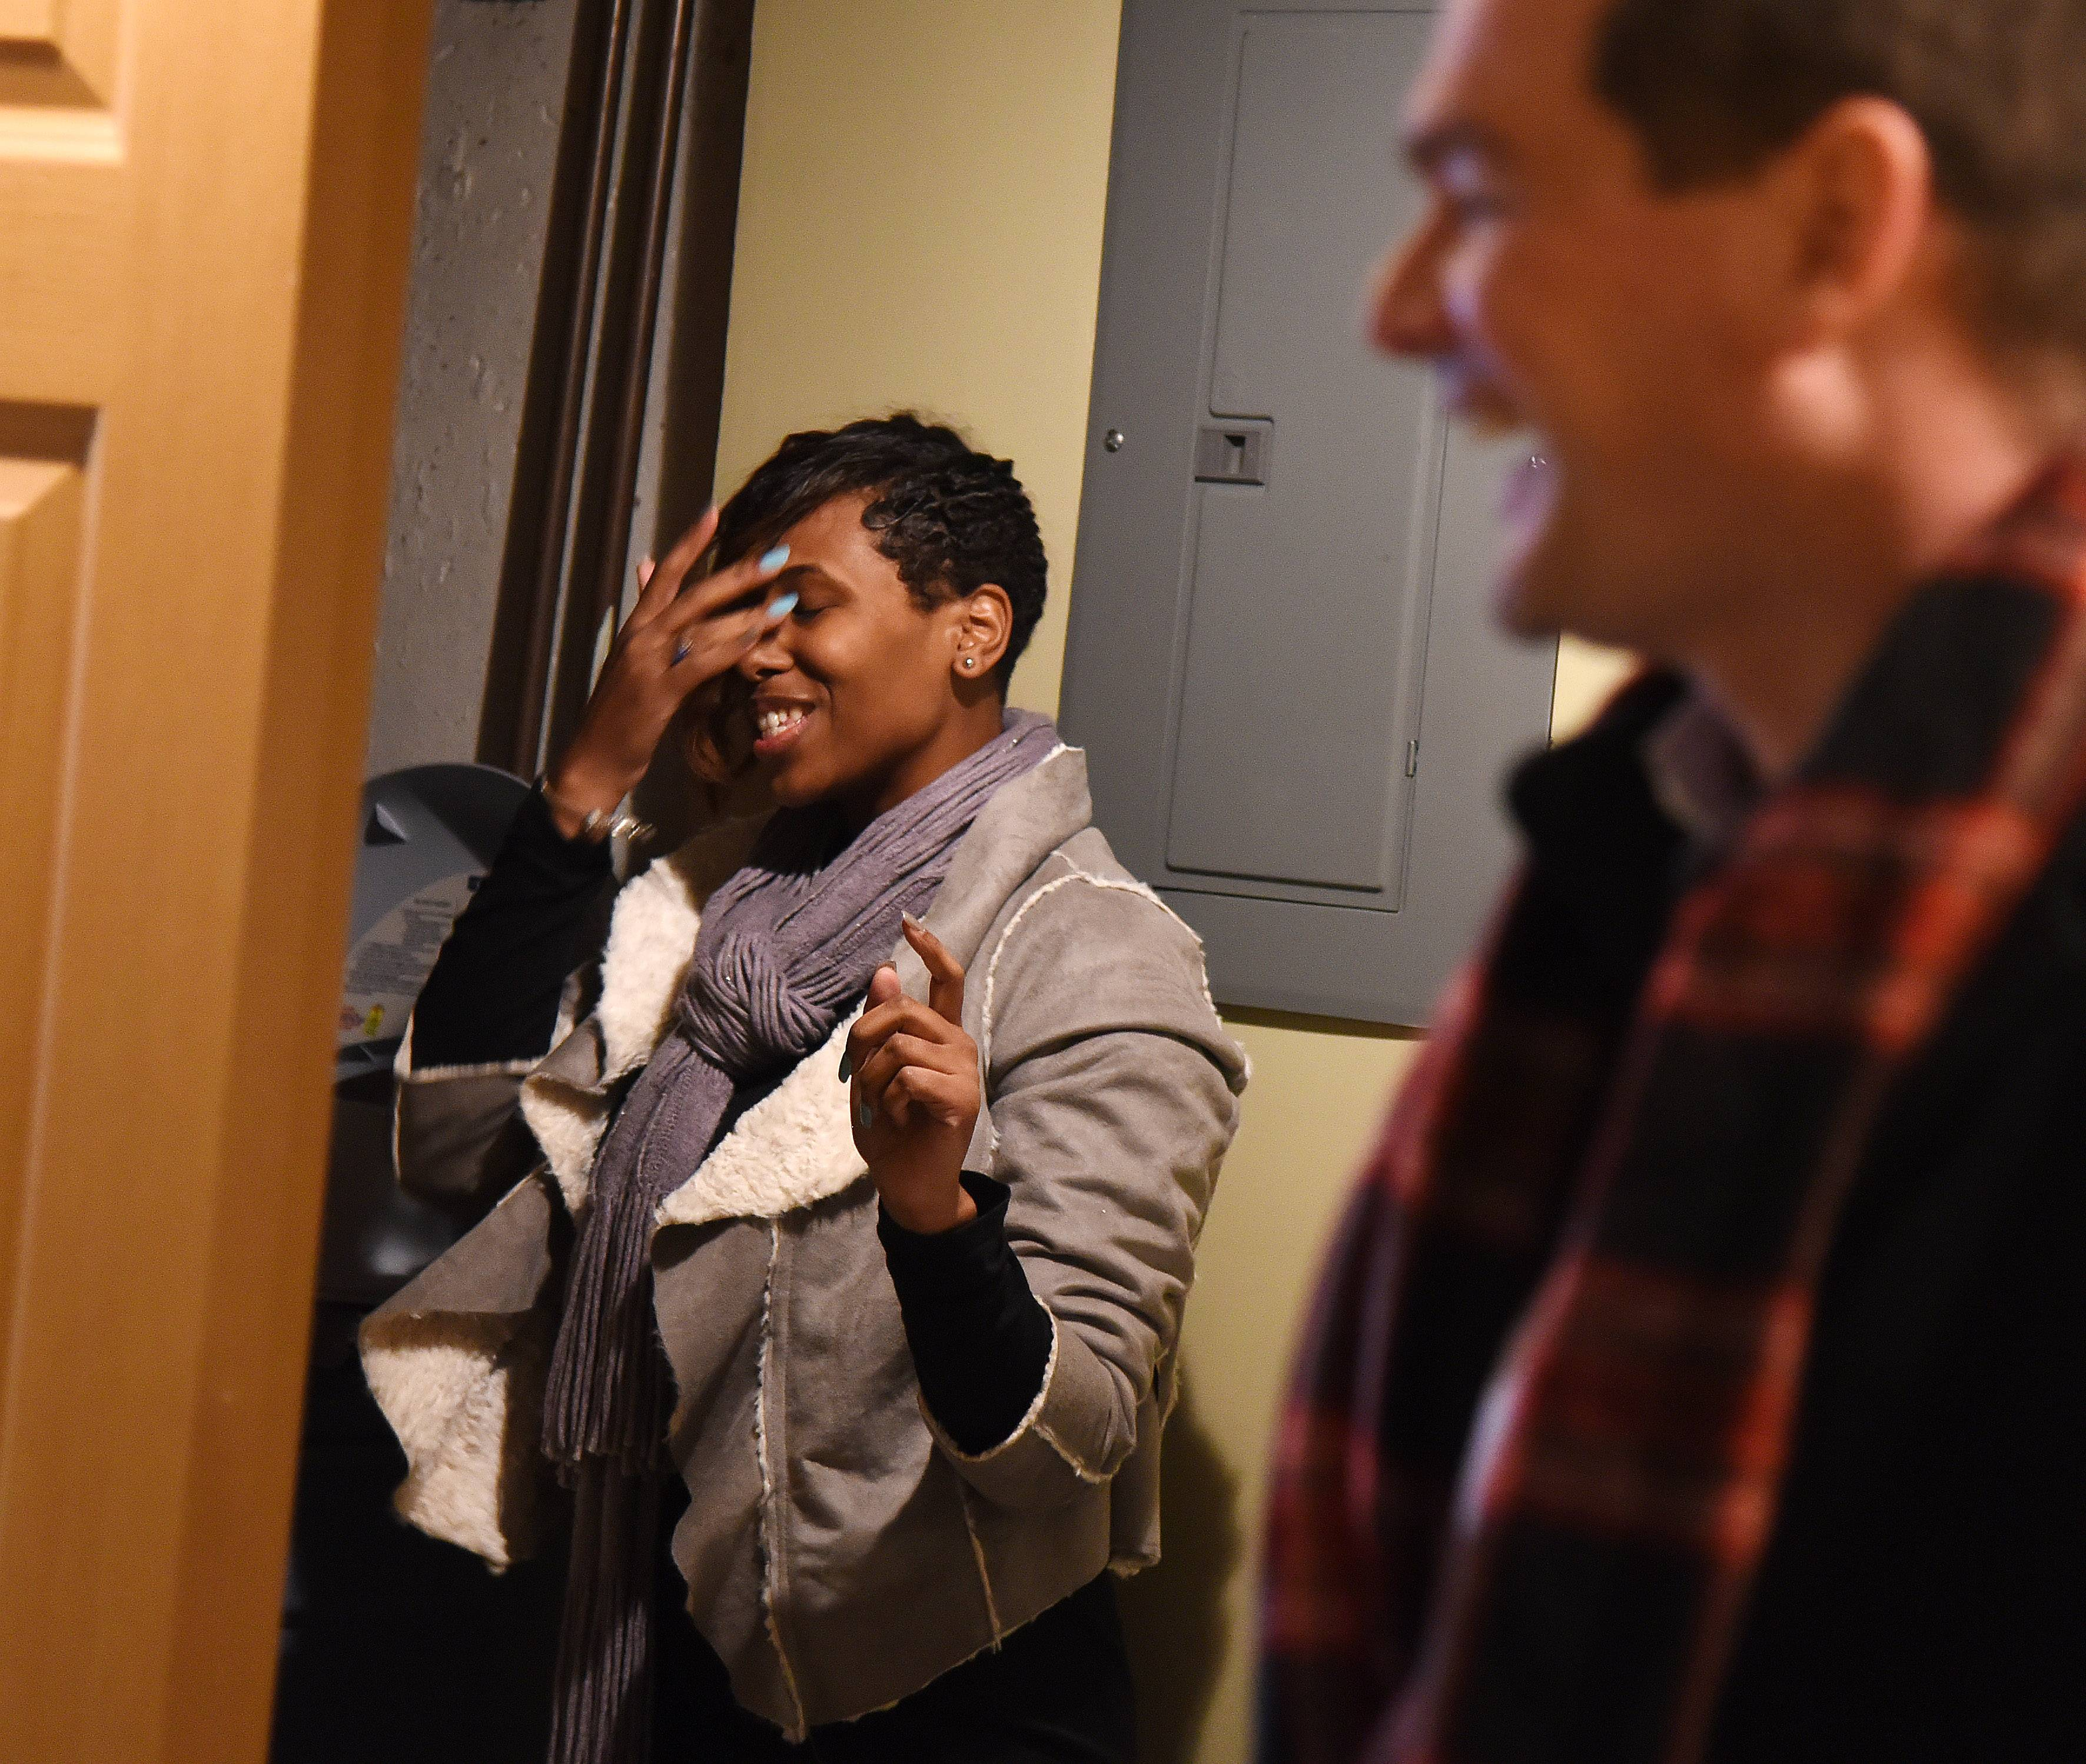 U.S. Navy veteran Shynae Murphy is overwhelmed by the finished basement in her newly renovated home, which was awarded to her by Operation Homefront and JPMorgan Chase.